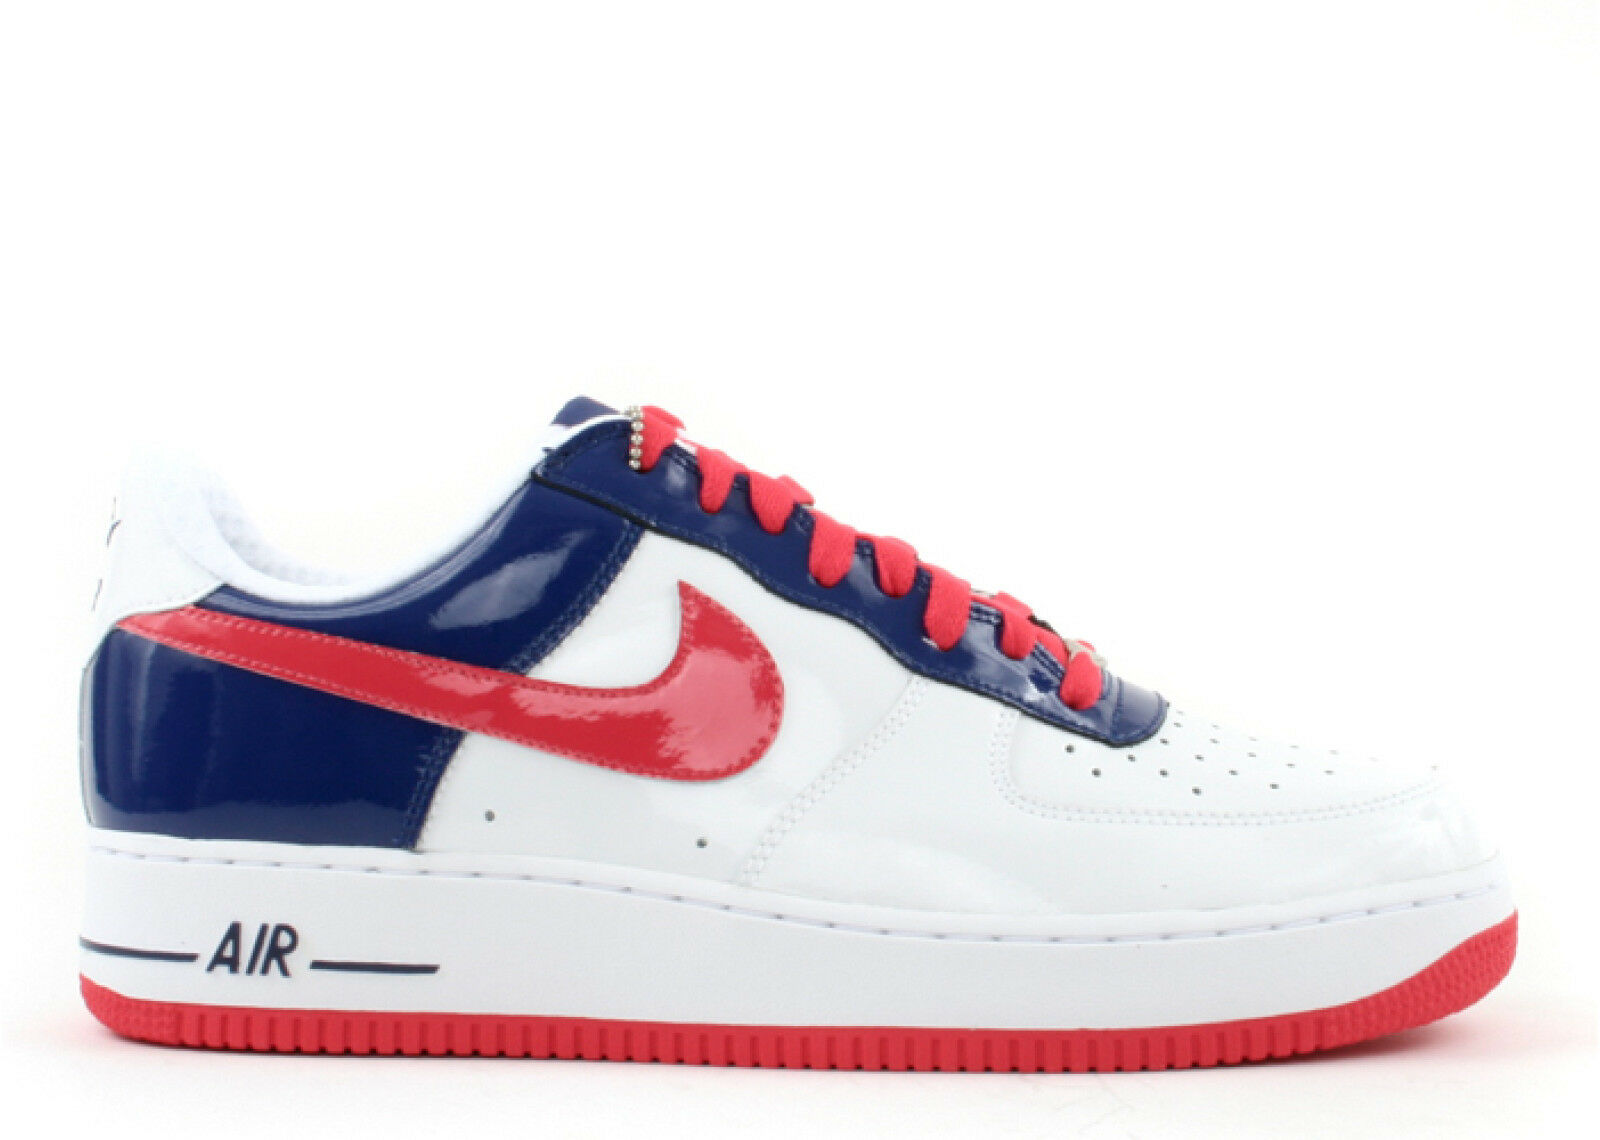 NIKE AIR FORCE 1 Premium South Korea WORLD CUP White bluee Red Mens sz 11.5 shoes